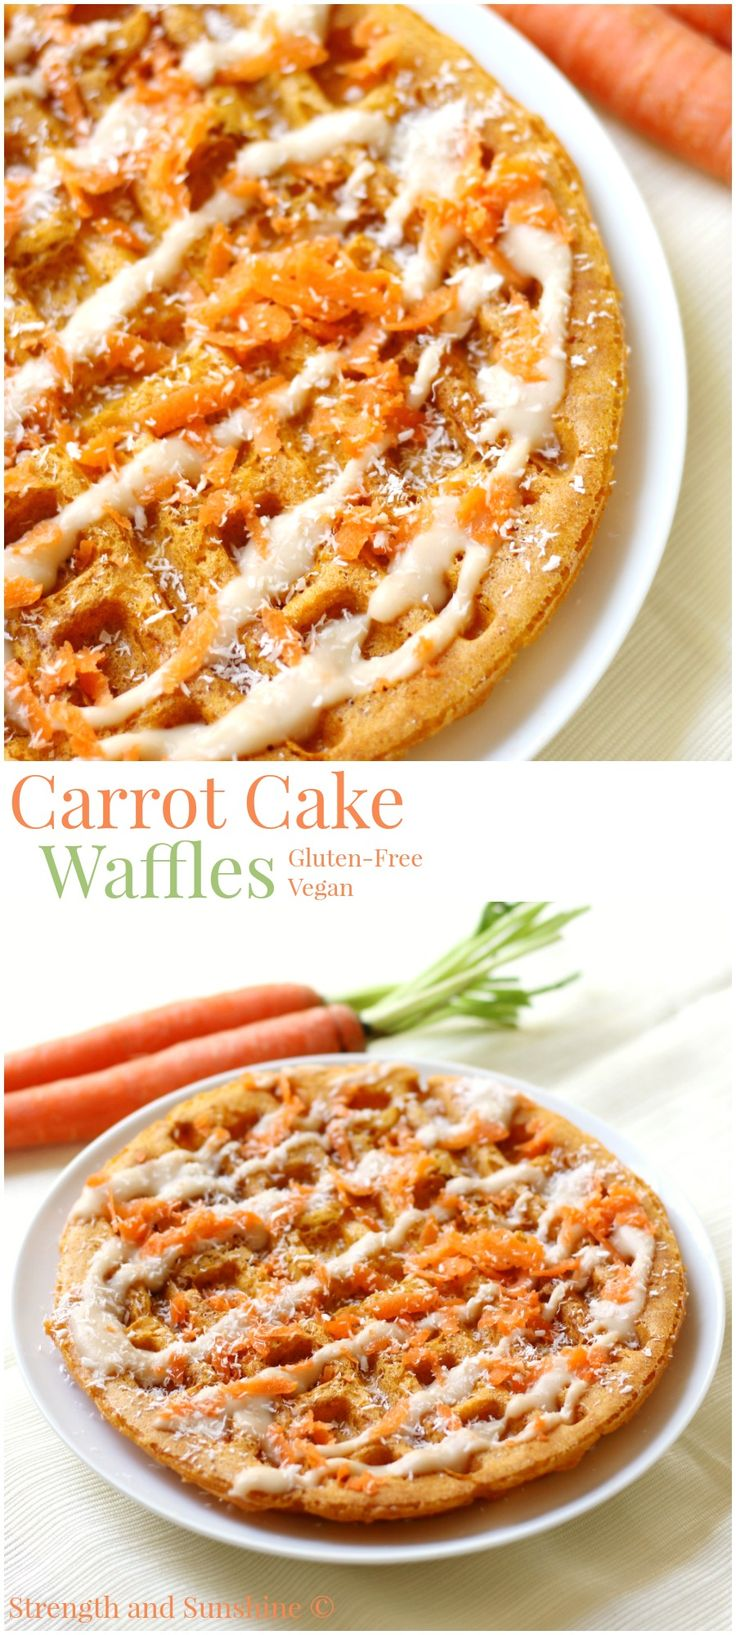 Carrot Cake Waffles | Strength and Sunshine @RebeccaGF666 A secret ingredient to easily sneak in more veggies than you thought possible in a delicious breakfast recipe! Gluten-free & vegan carrot cake waffles you can feel good about making, any day of the week!